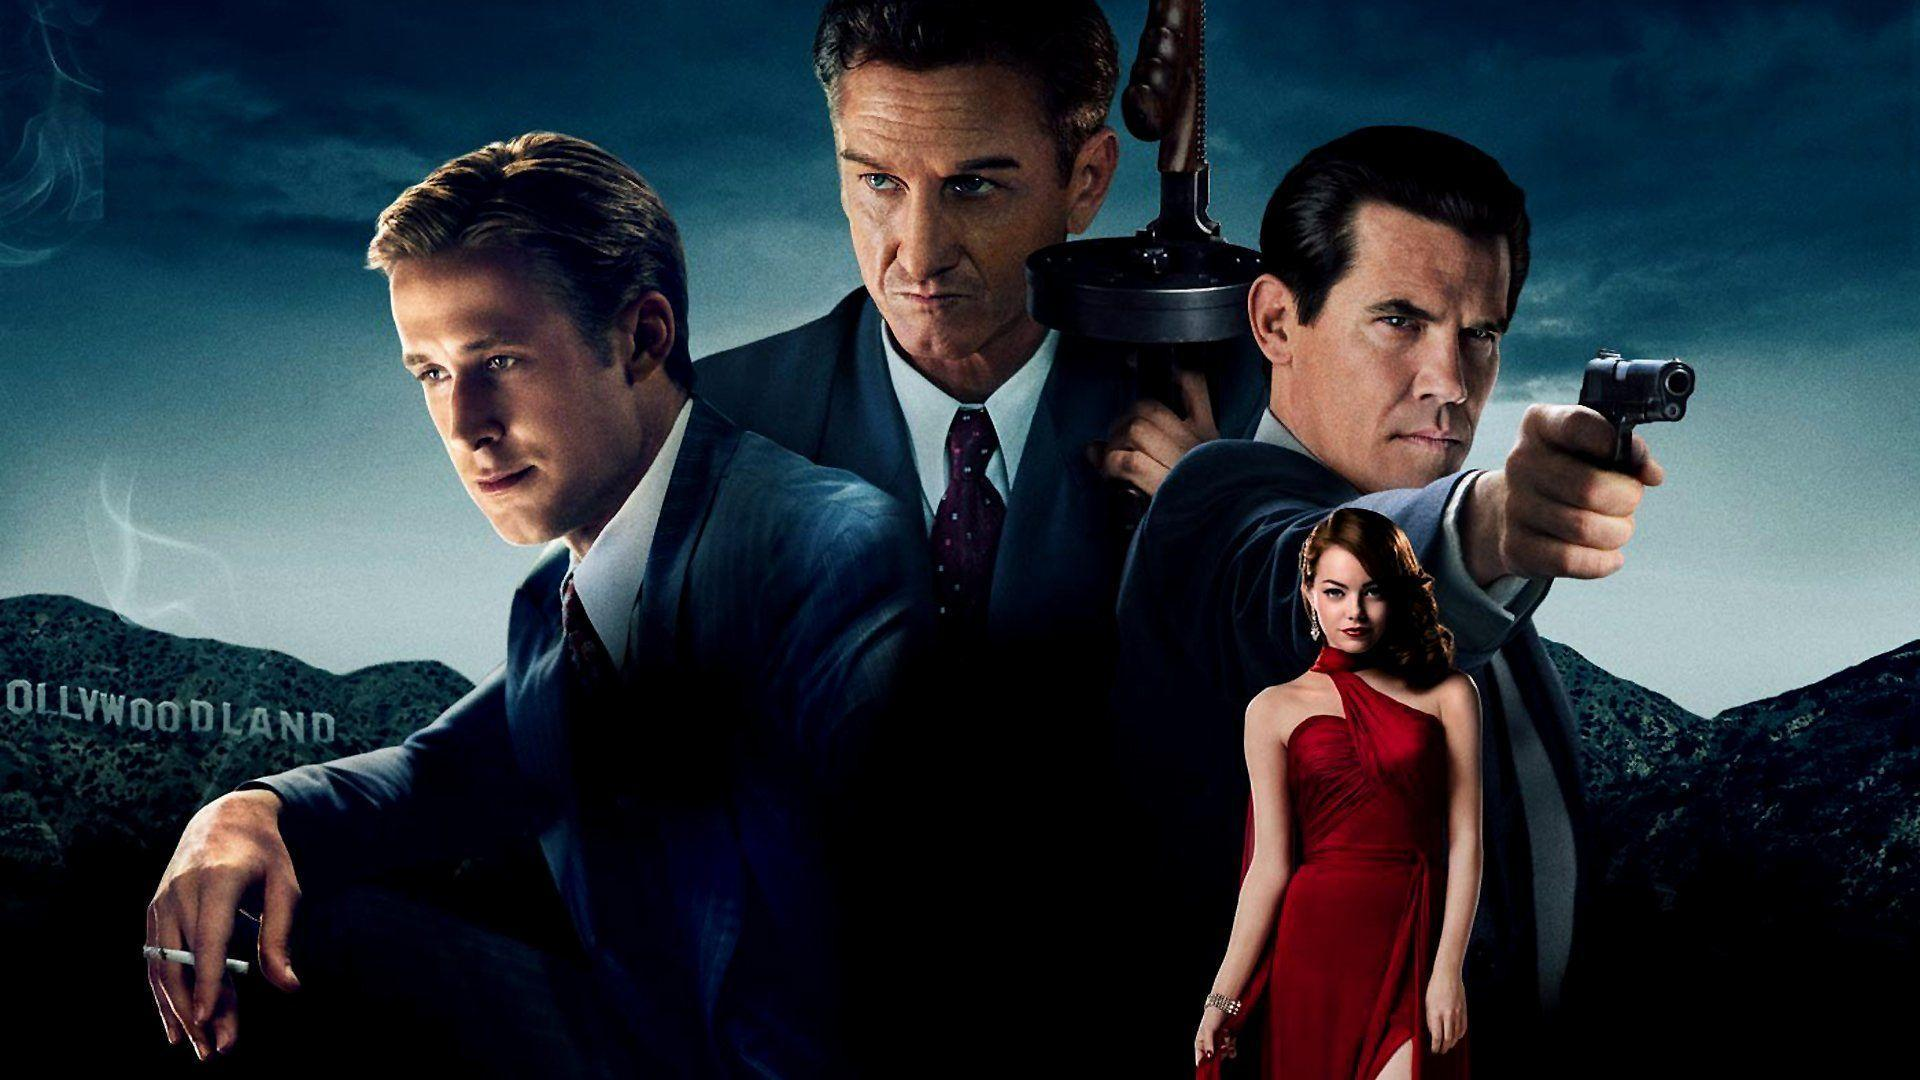 27 Gangster Squad HD Wallpapers | Backgrounds - Wallpaper Abyss